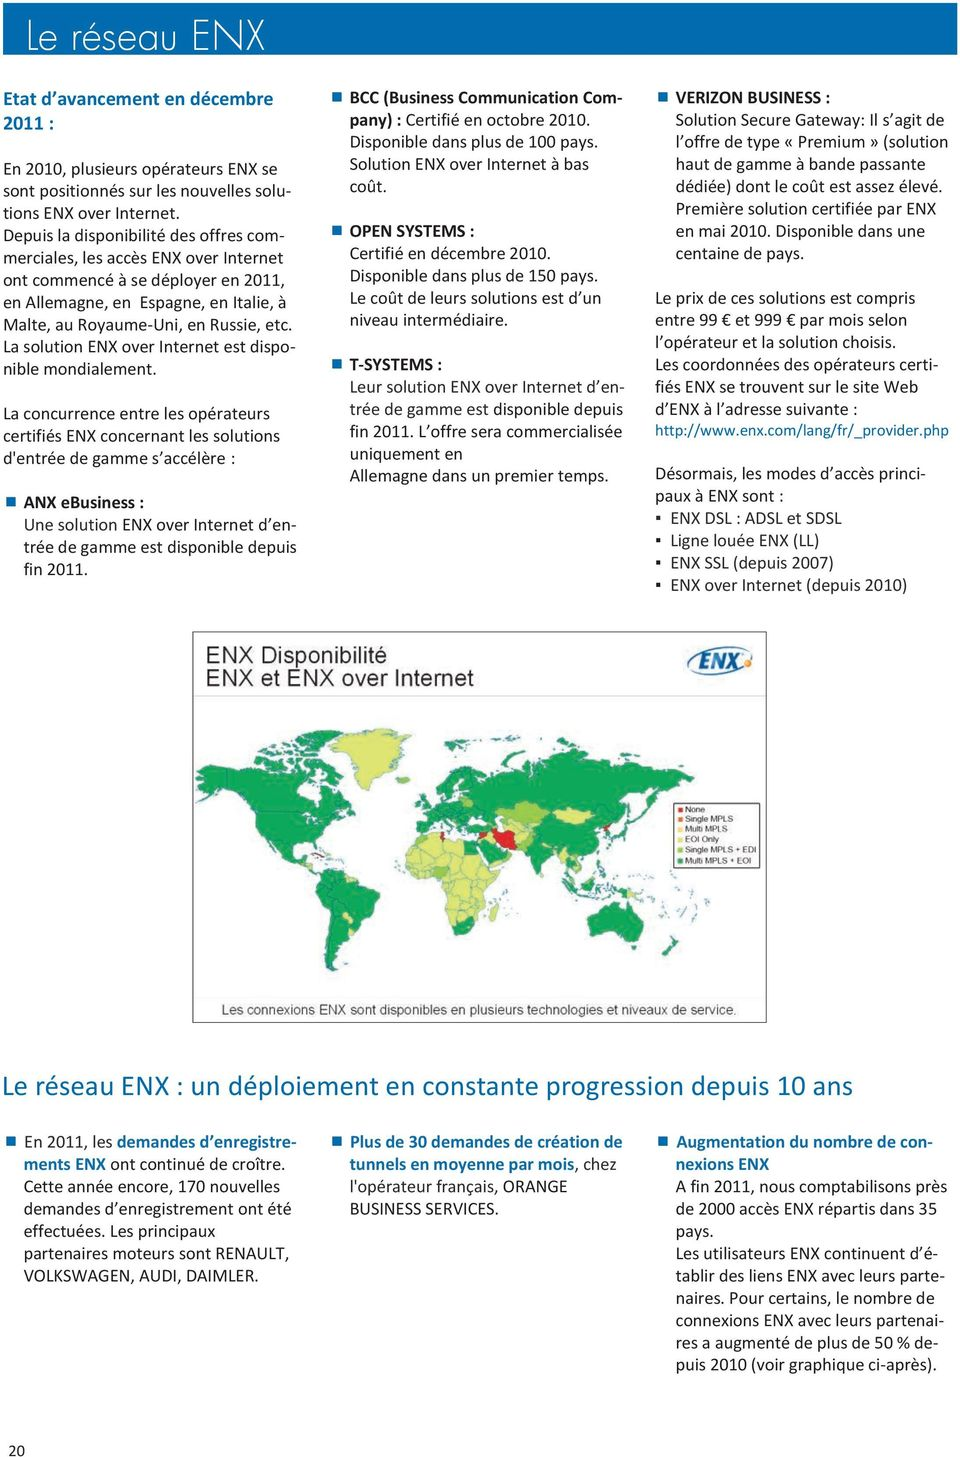 La solution ENX over Internet est disponible mondialement.